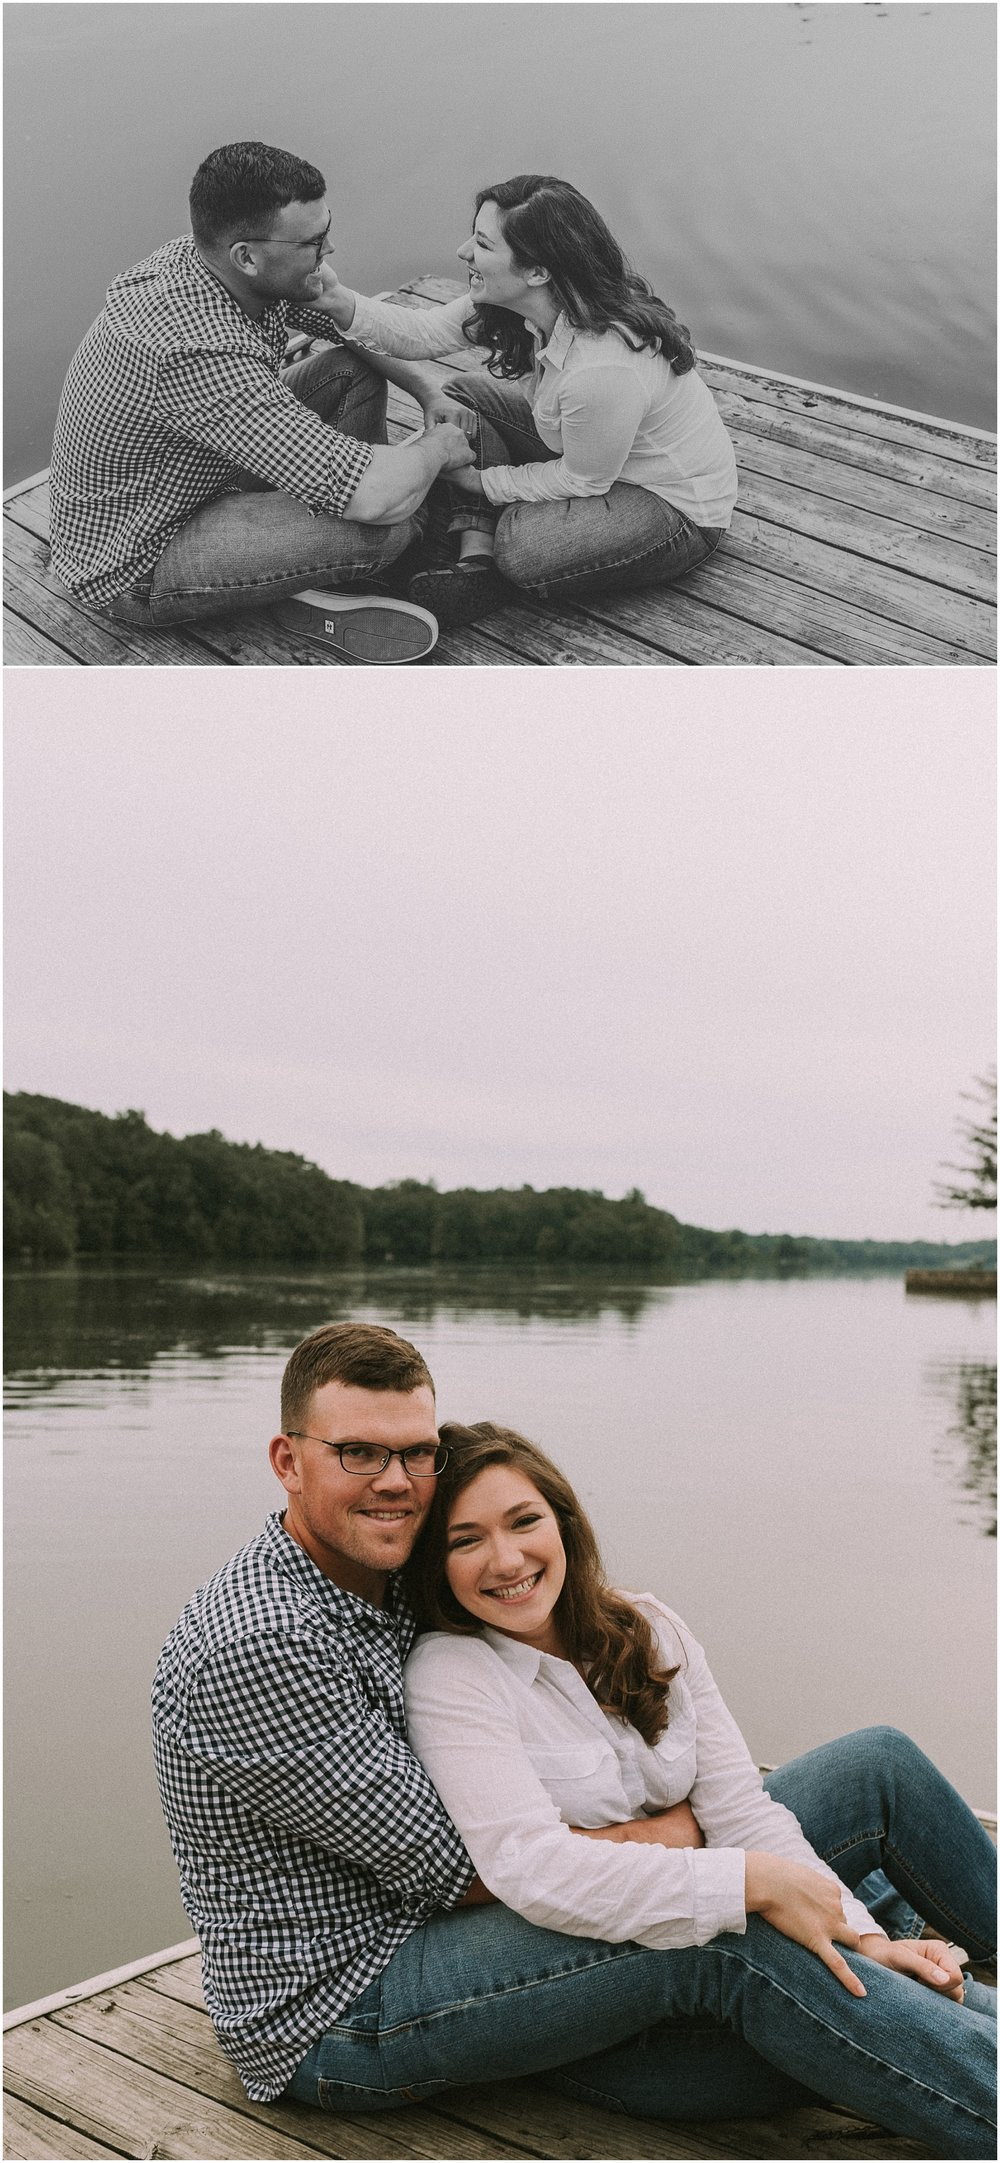 gifford pinchot state park-engagement-anniversary-photo session-outdoor photos-husband-wife-central pennsylvania_0303.jpg